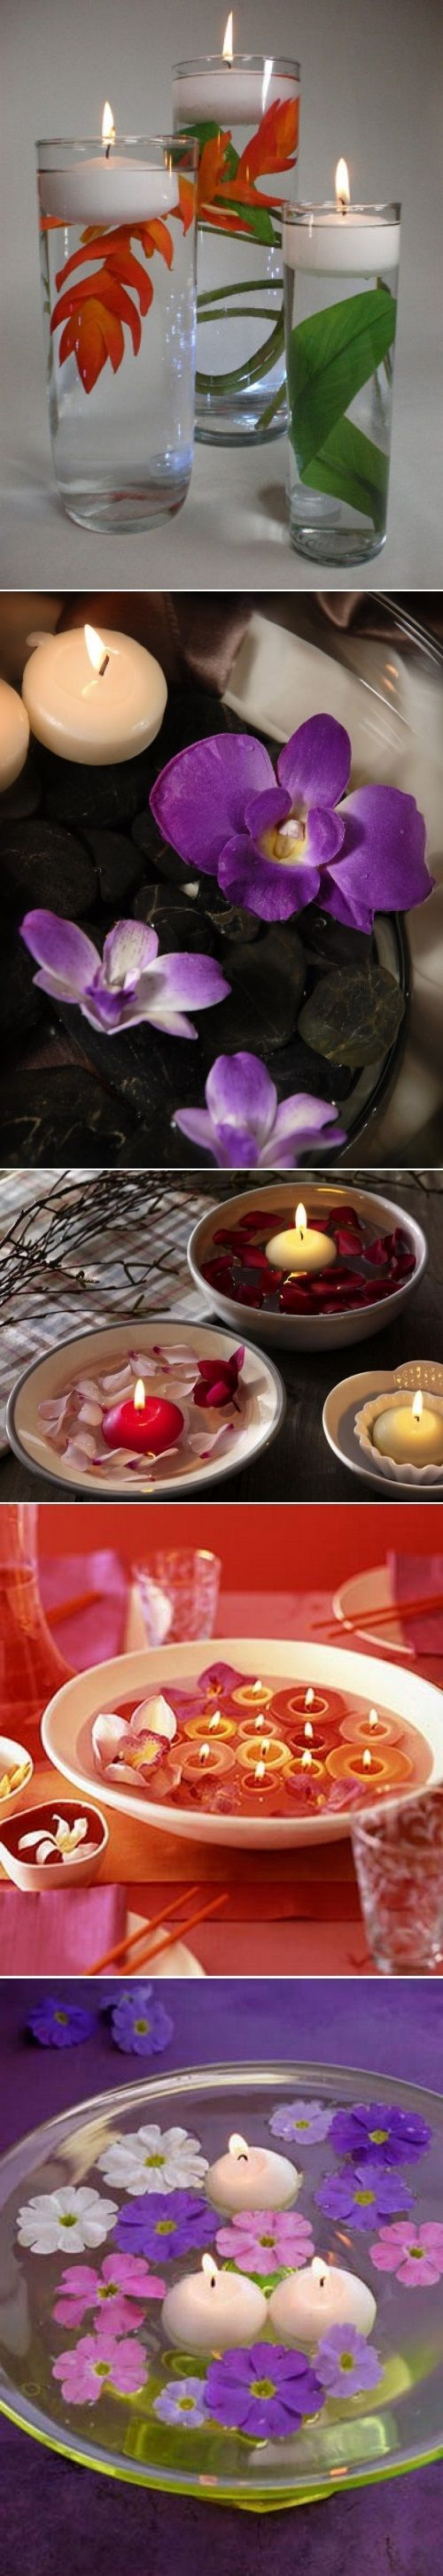 DIY Floating Flowers And Candles Centerpieces - vma.